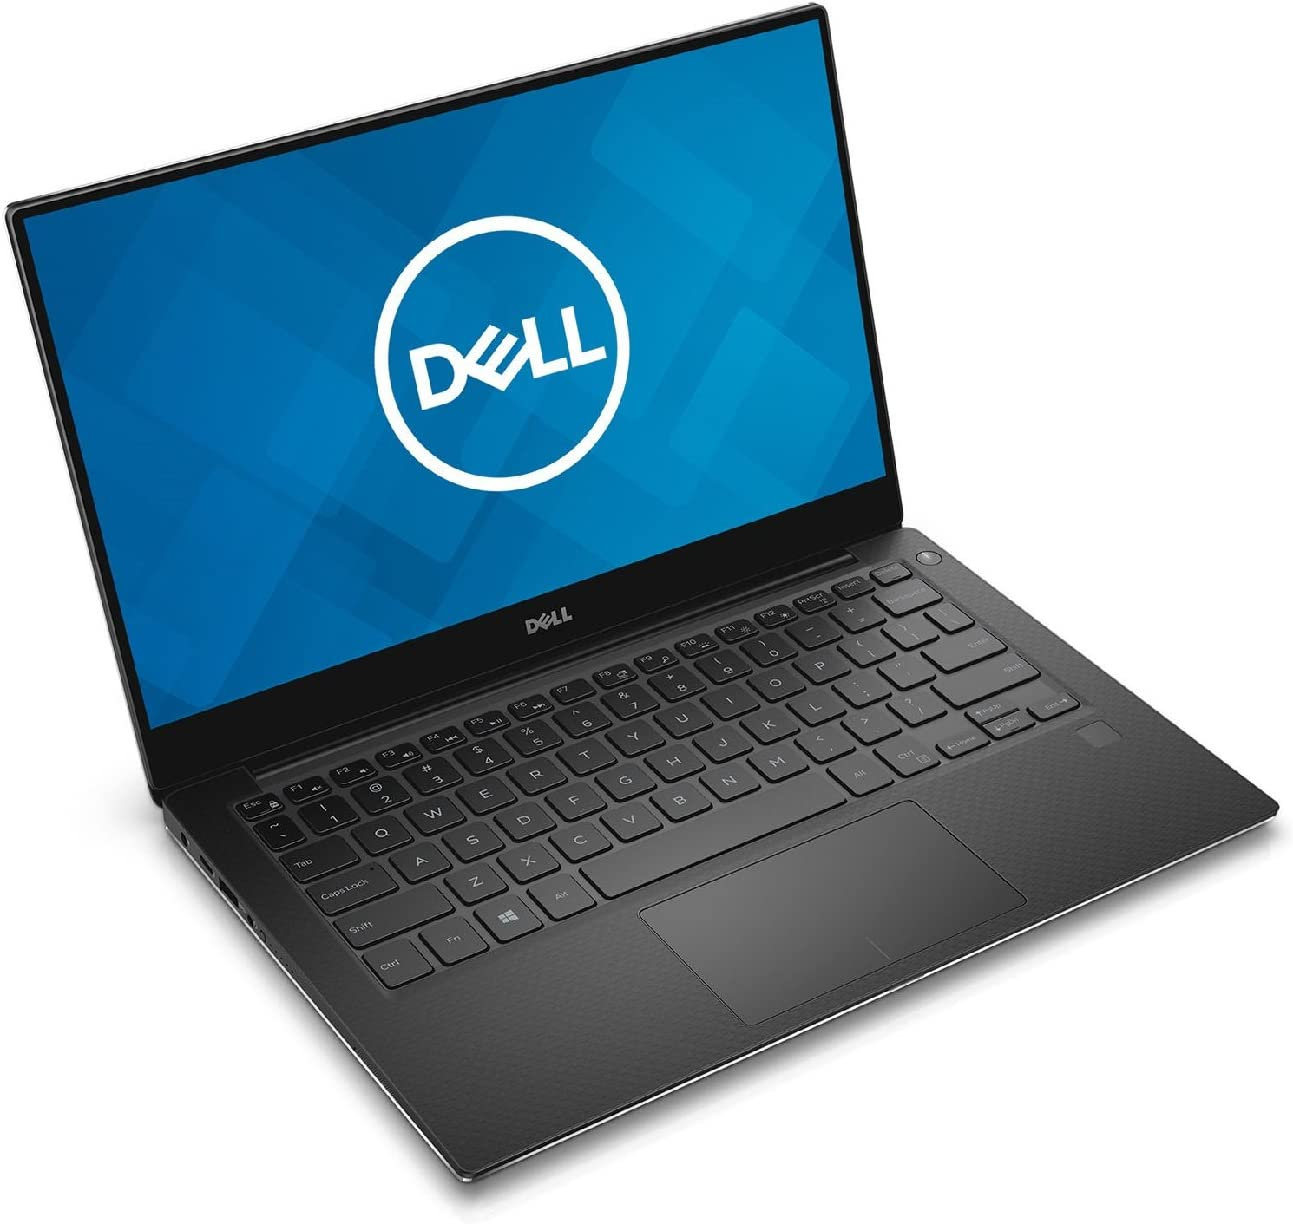 Dell PFG0V XPS 13 9360 Notebook with Intel i7-7560U, 8GB 256GB SSD, 13.3""